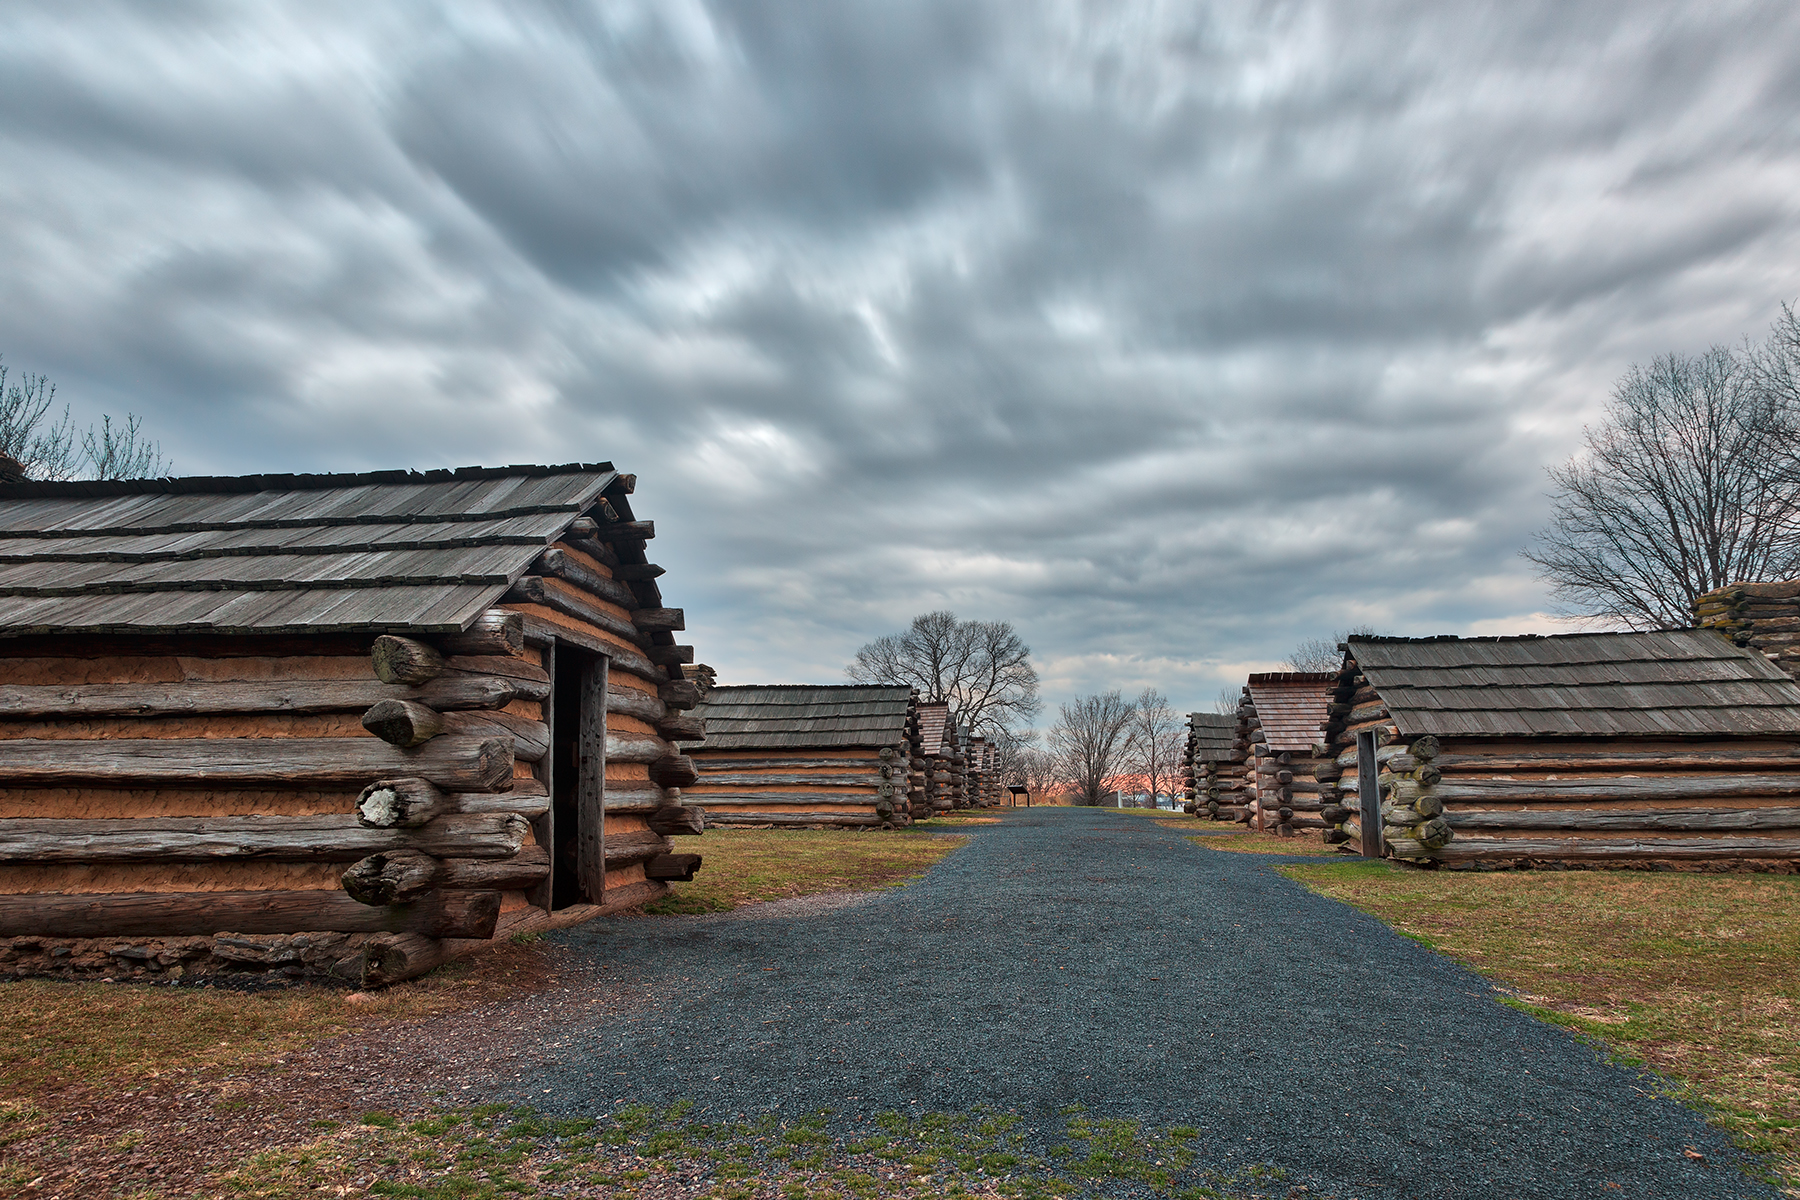 Valley forge cabin trail - hdr photo